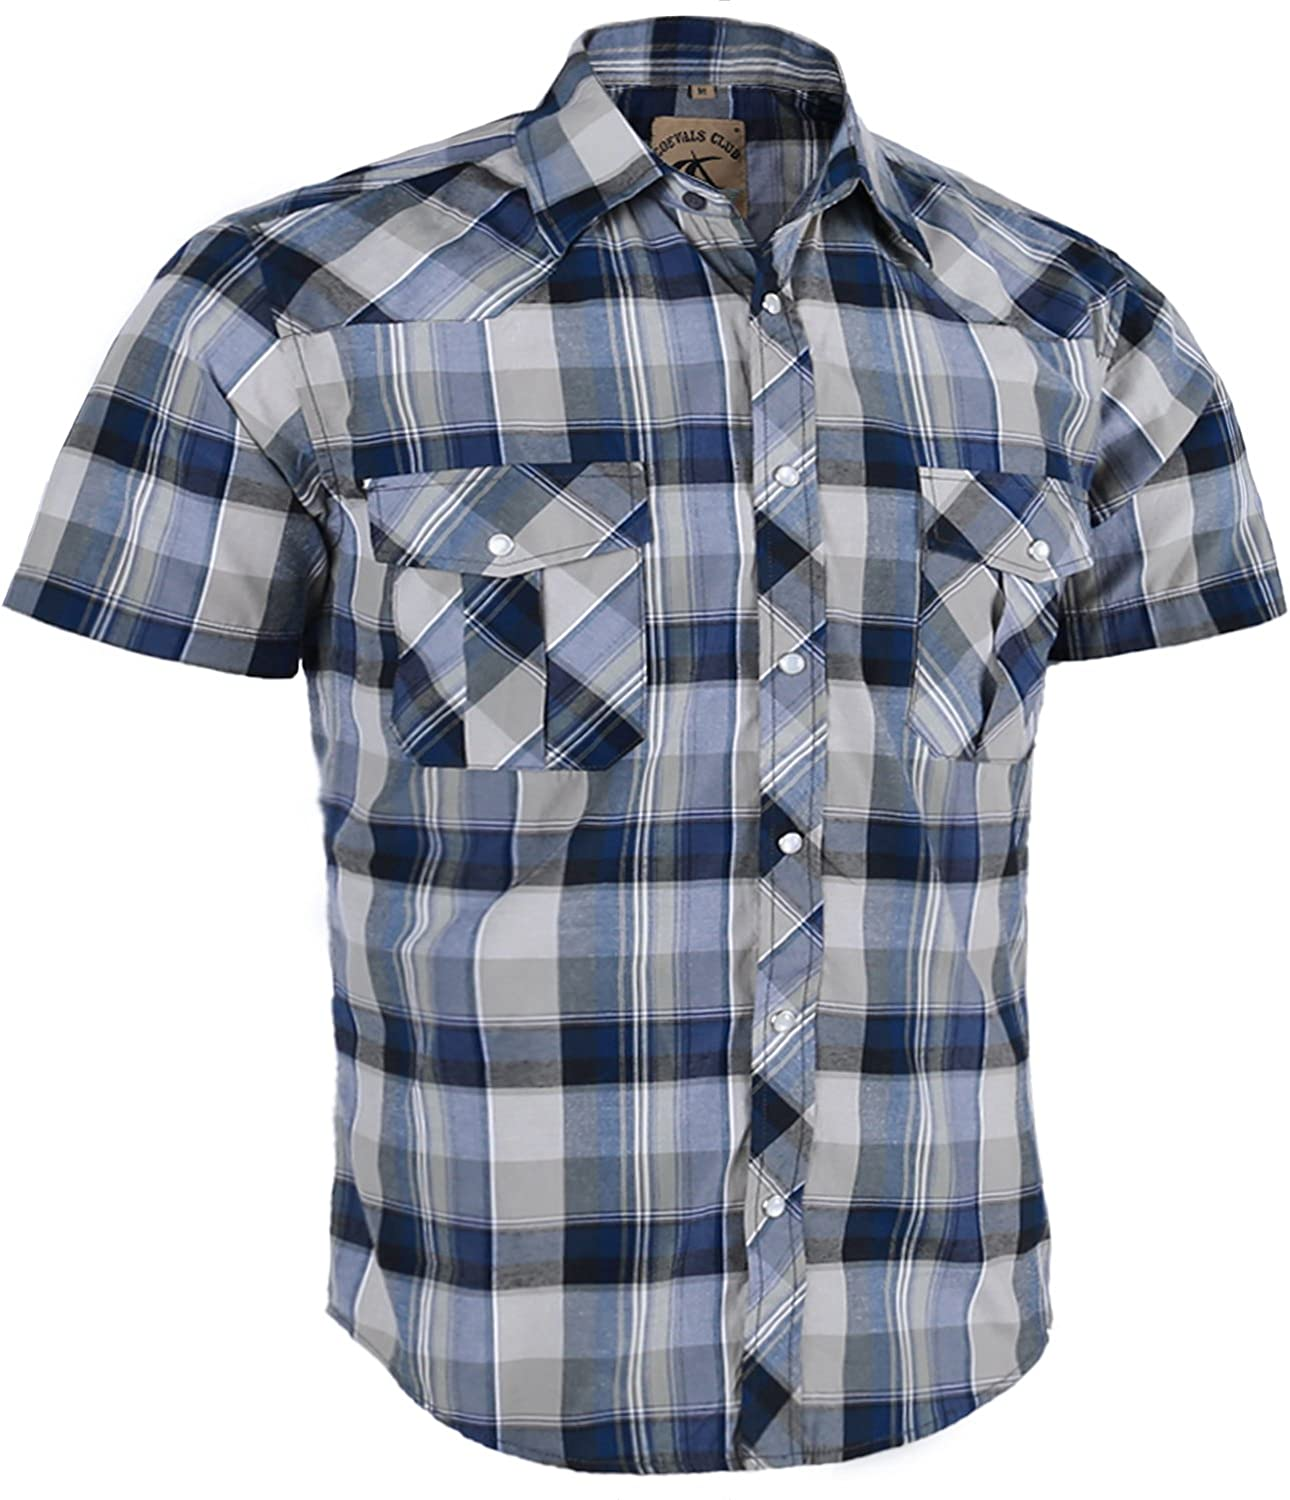 Coevals Club Men's Casual Plaid Pearl Button Snap Front Short Sleeve Shirt Regular Fit (Gray/Blue #13, M)